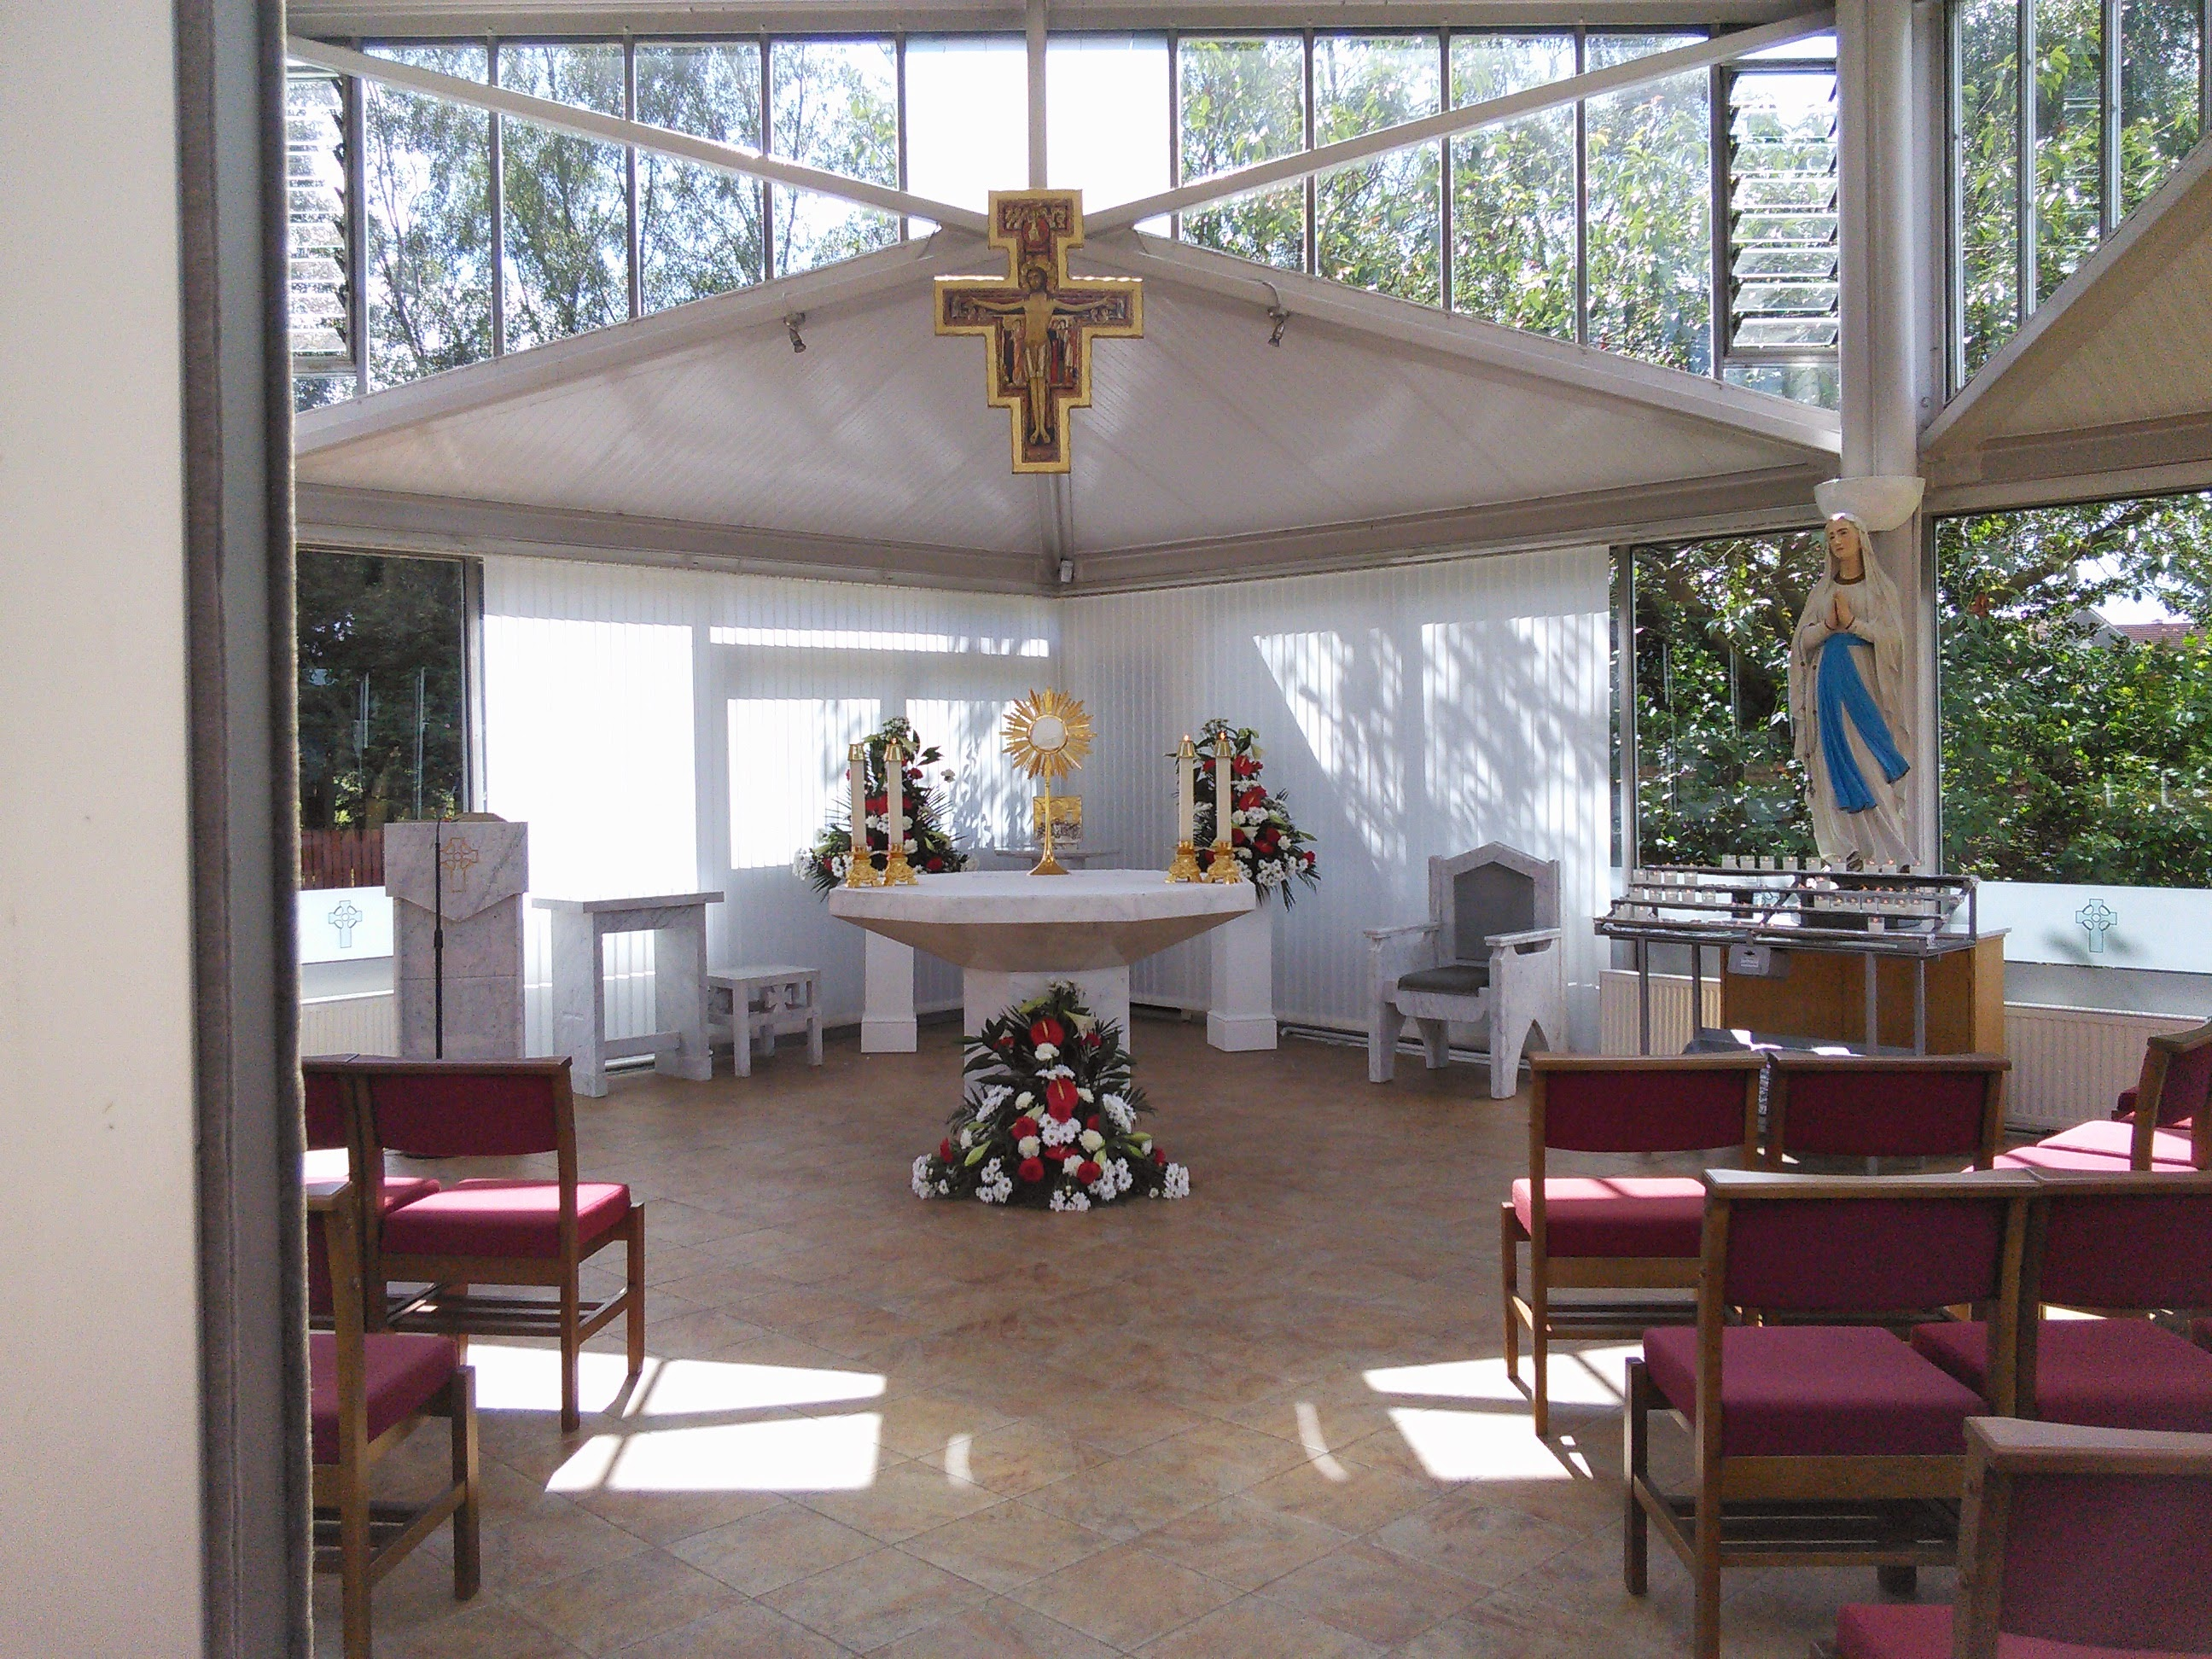 Carfin Grotto Glass Chapel